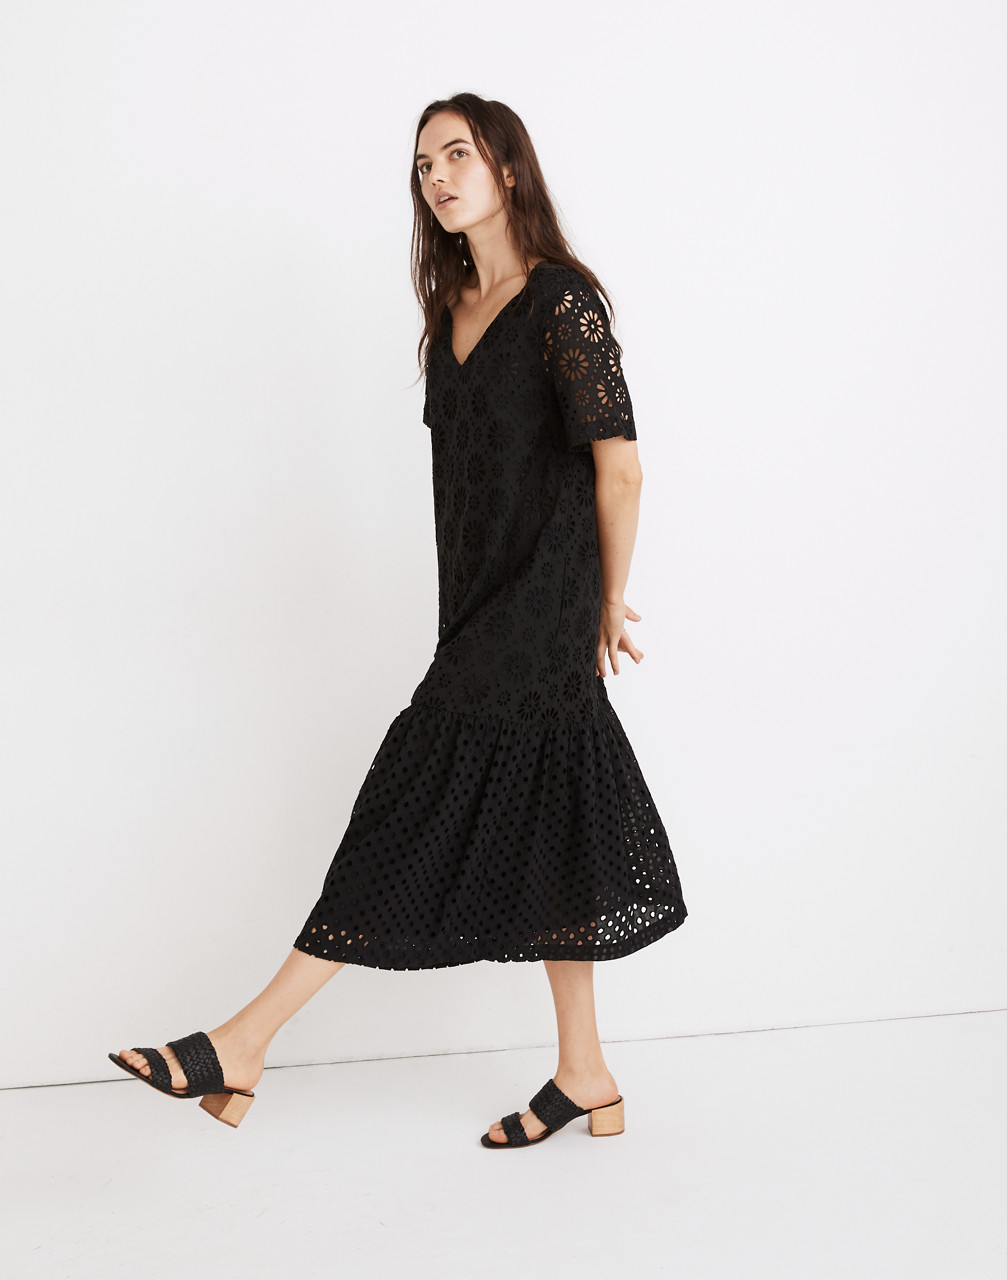 Great Gatsby Dress – Great Gatsby Dresses for Sale Eyelet-Mix Midi Dress $138.00 AT vintagedancer.com